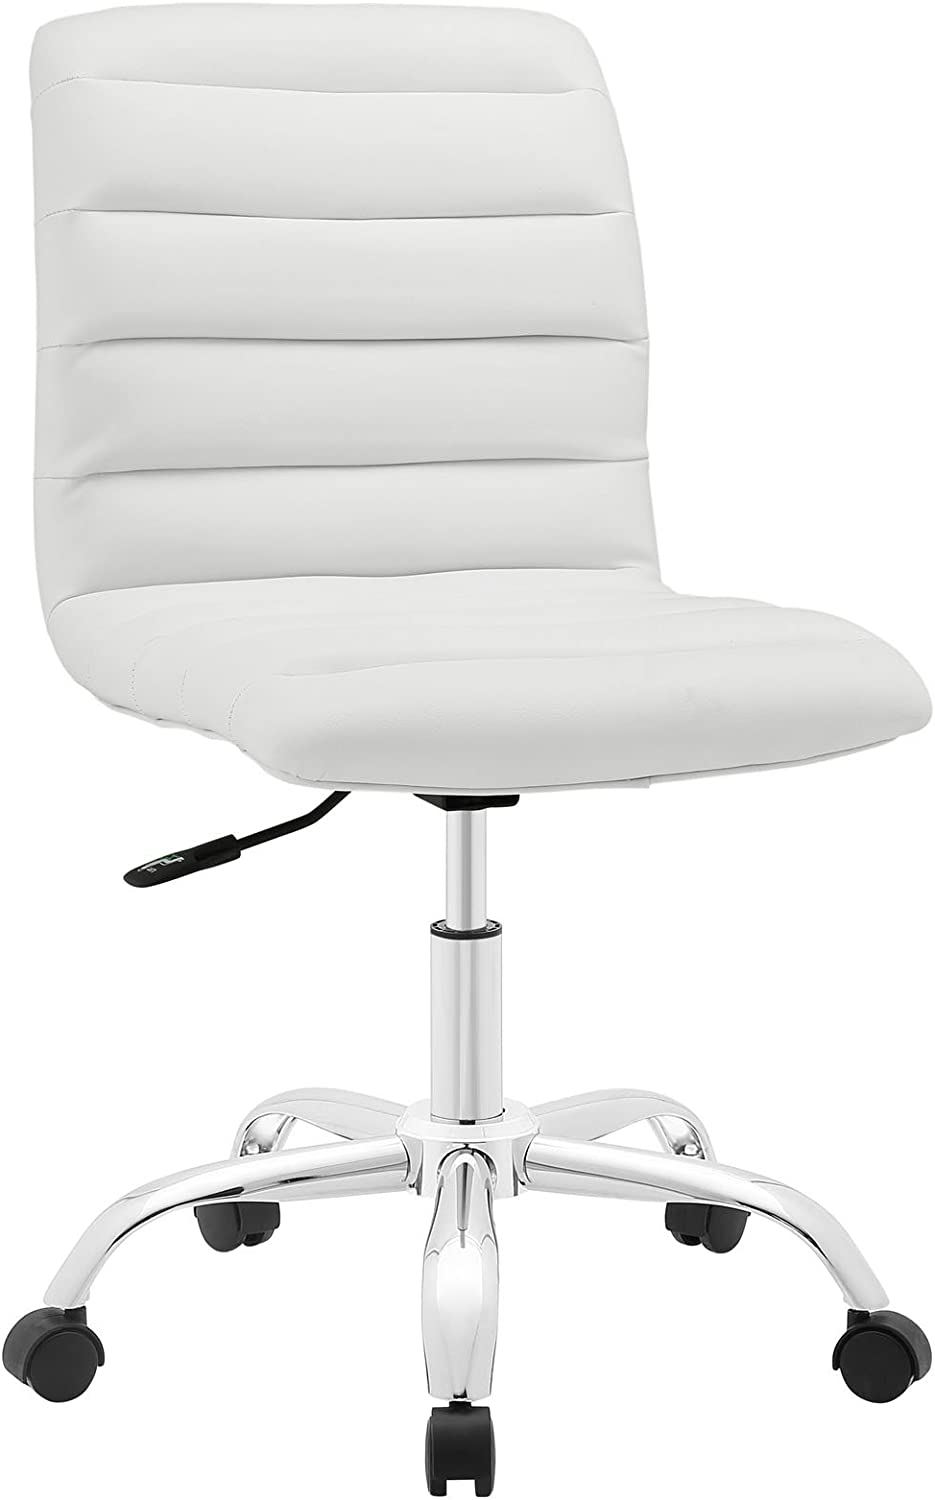 Modway Ripple Mid Back Office Chair, White